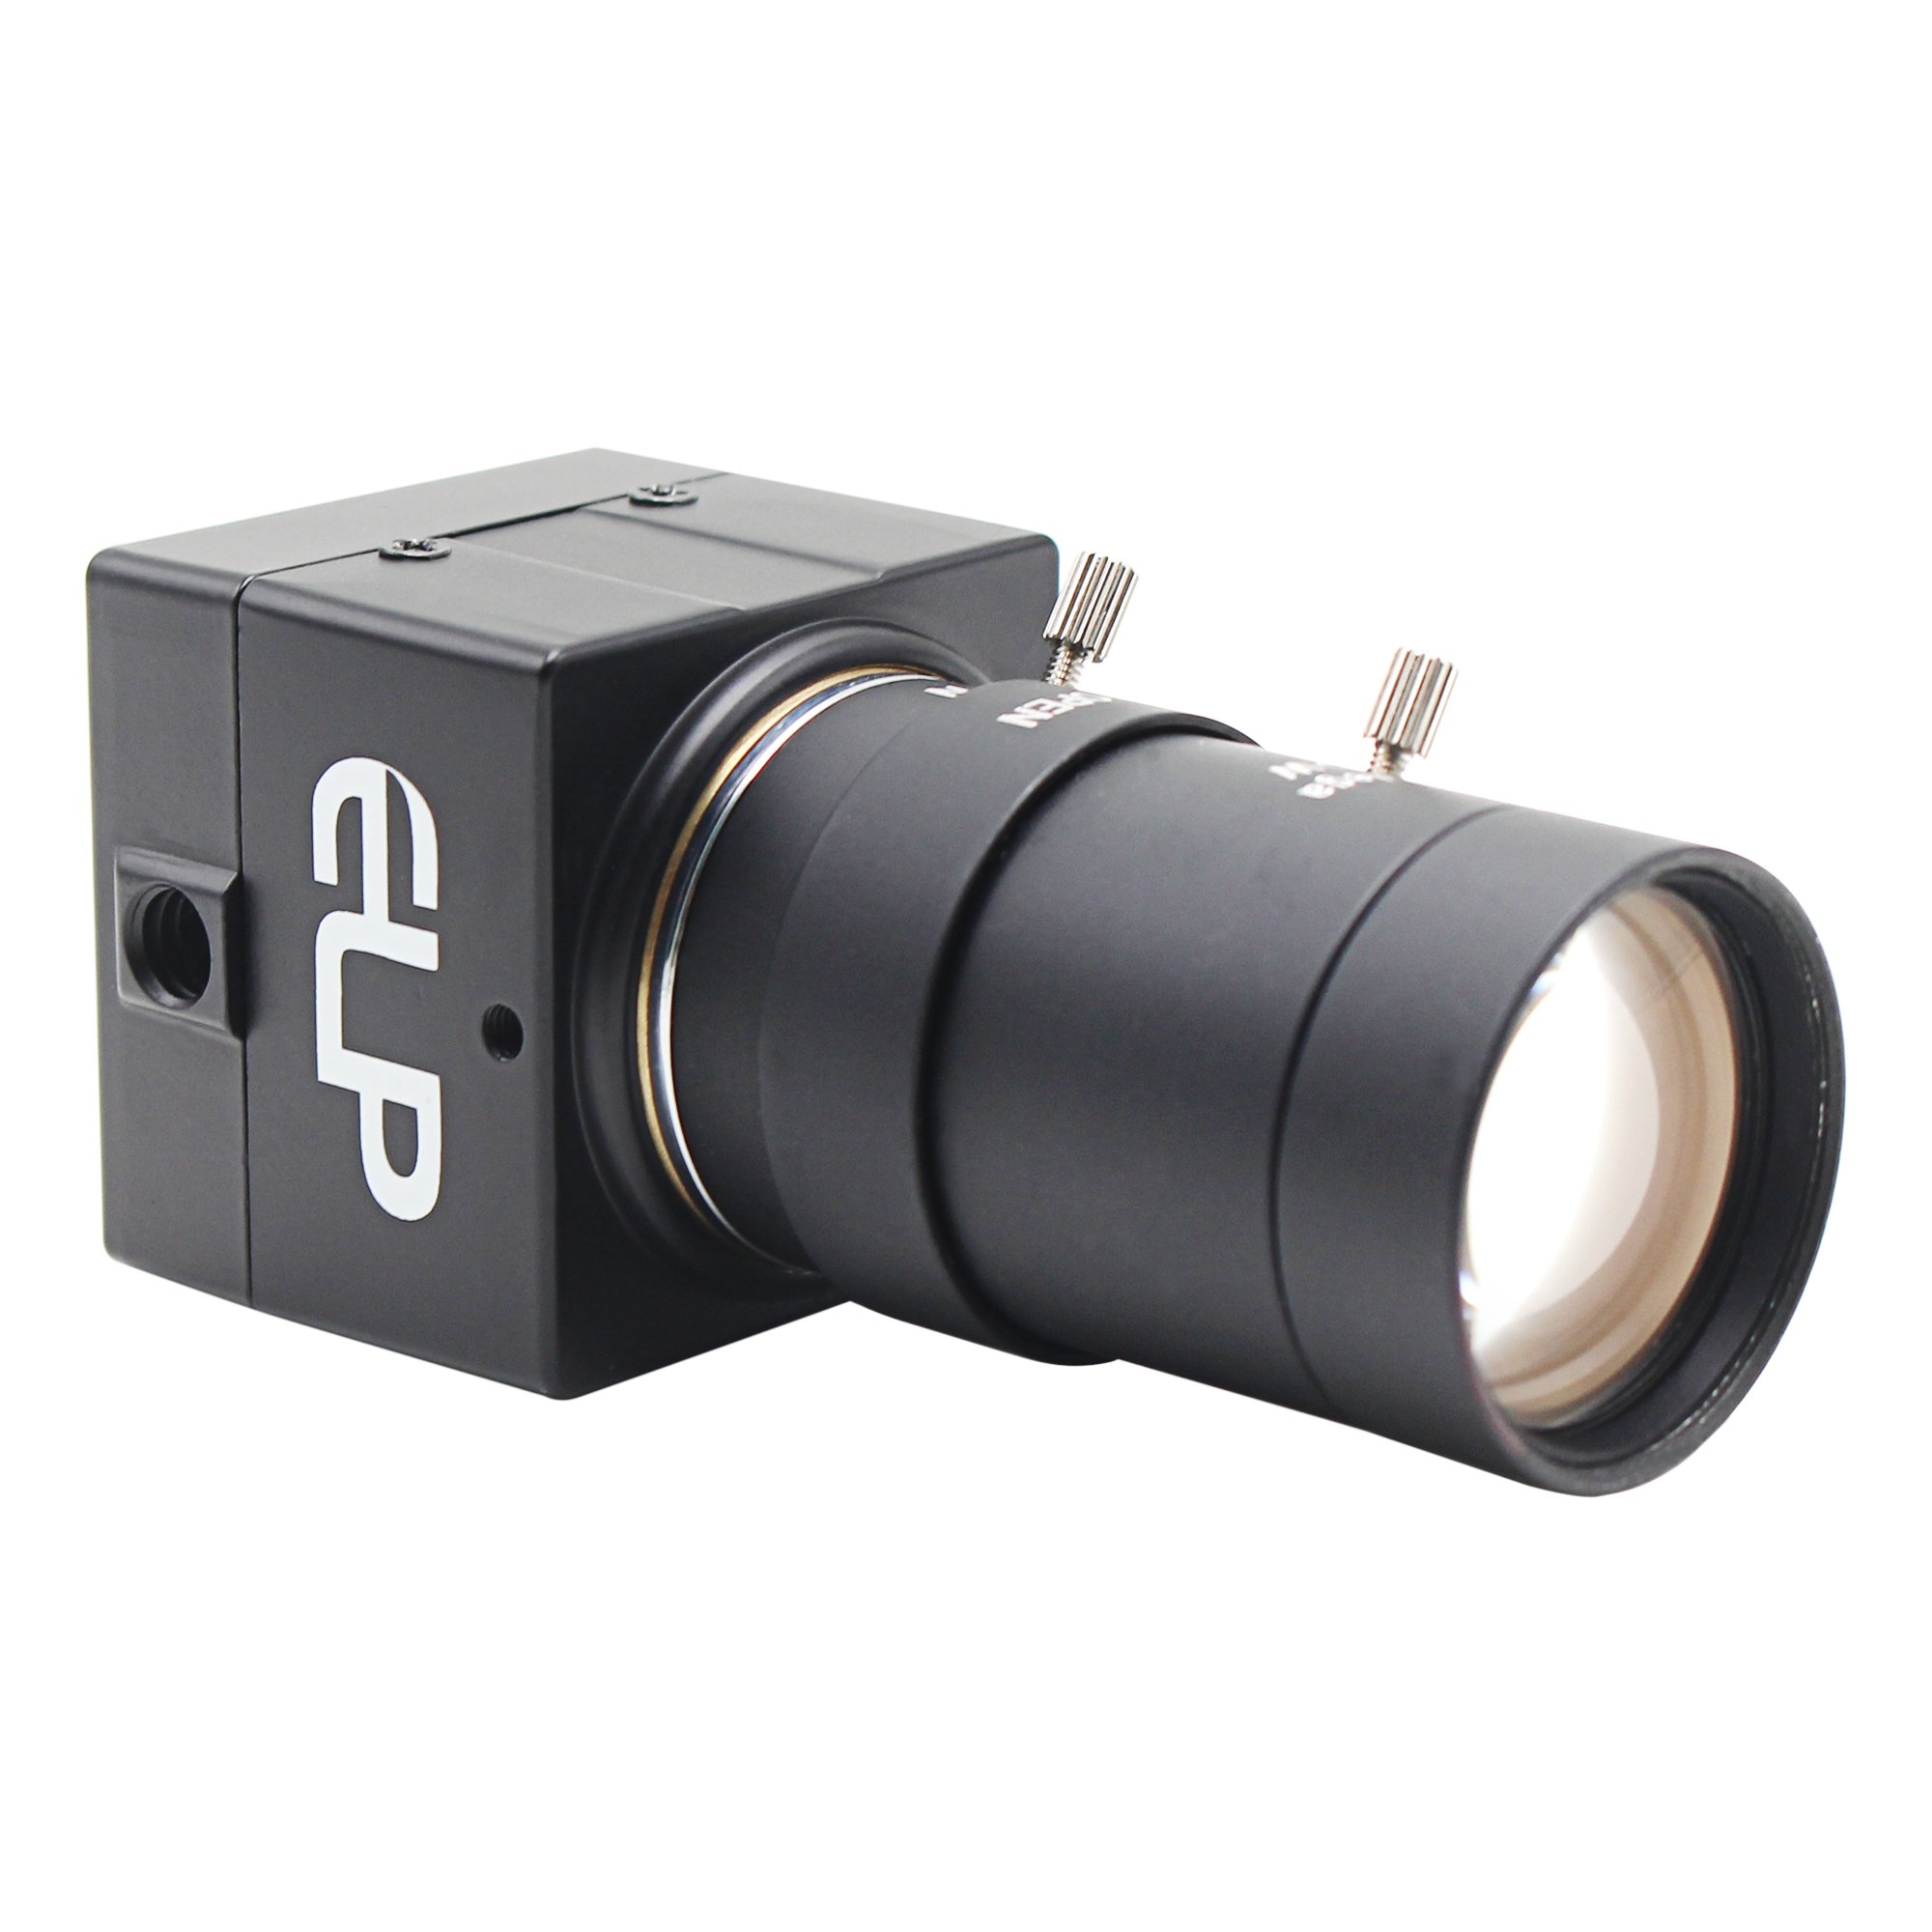 ELP 5-50mm Varifocal Lens 1080P USB Camera With H.264 High Definition SONY IMX322 Webcam For Android Linux Windows Industrial Video by ELP